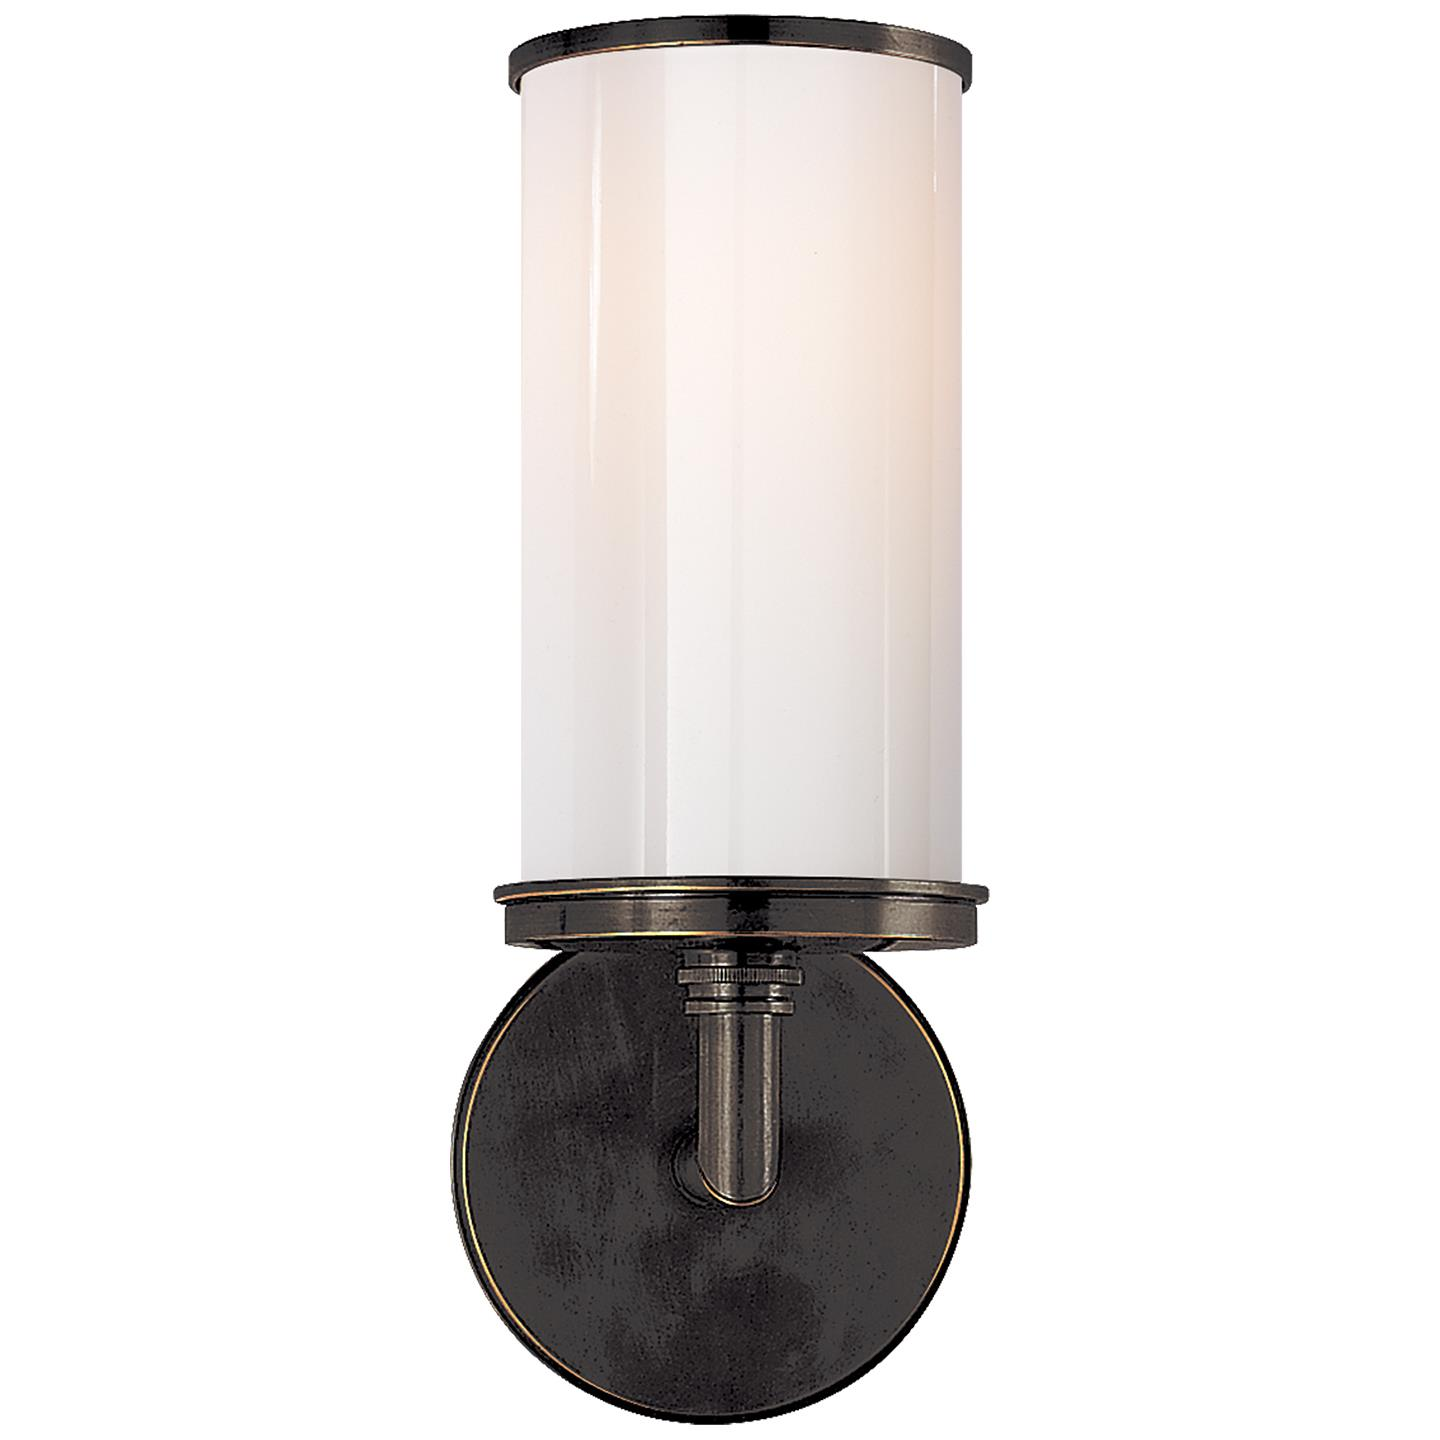 Studio Vc Cylinder 13 Inch Wall Sconce